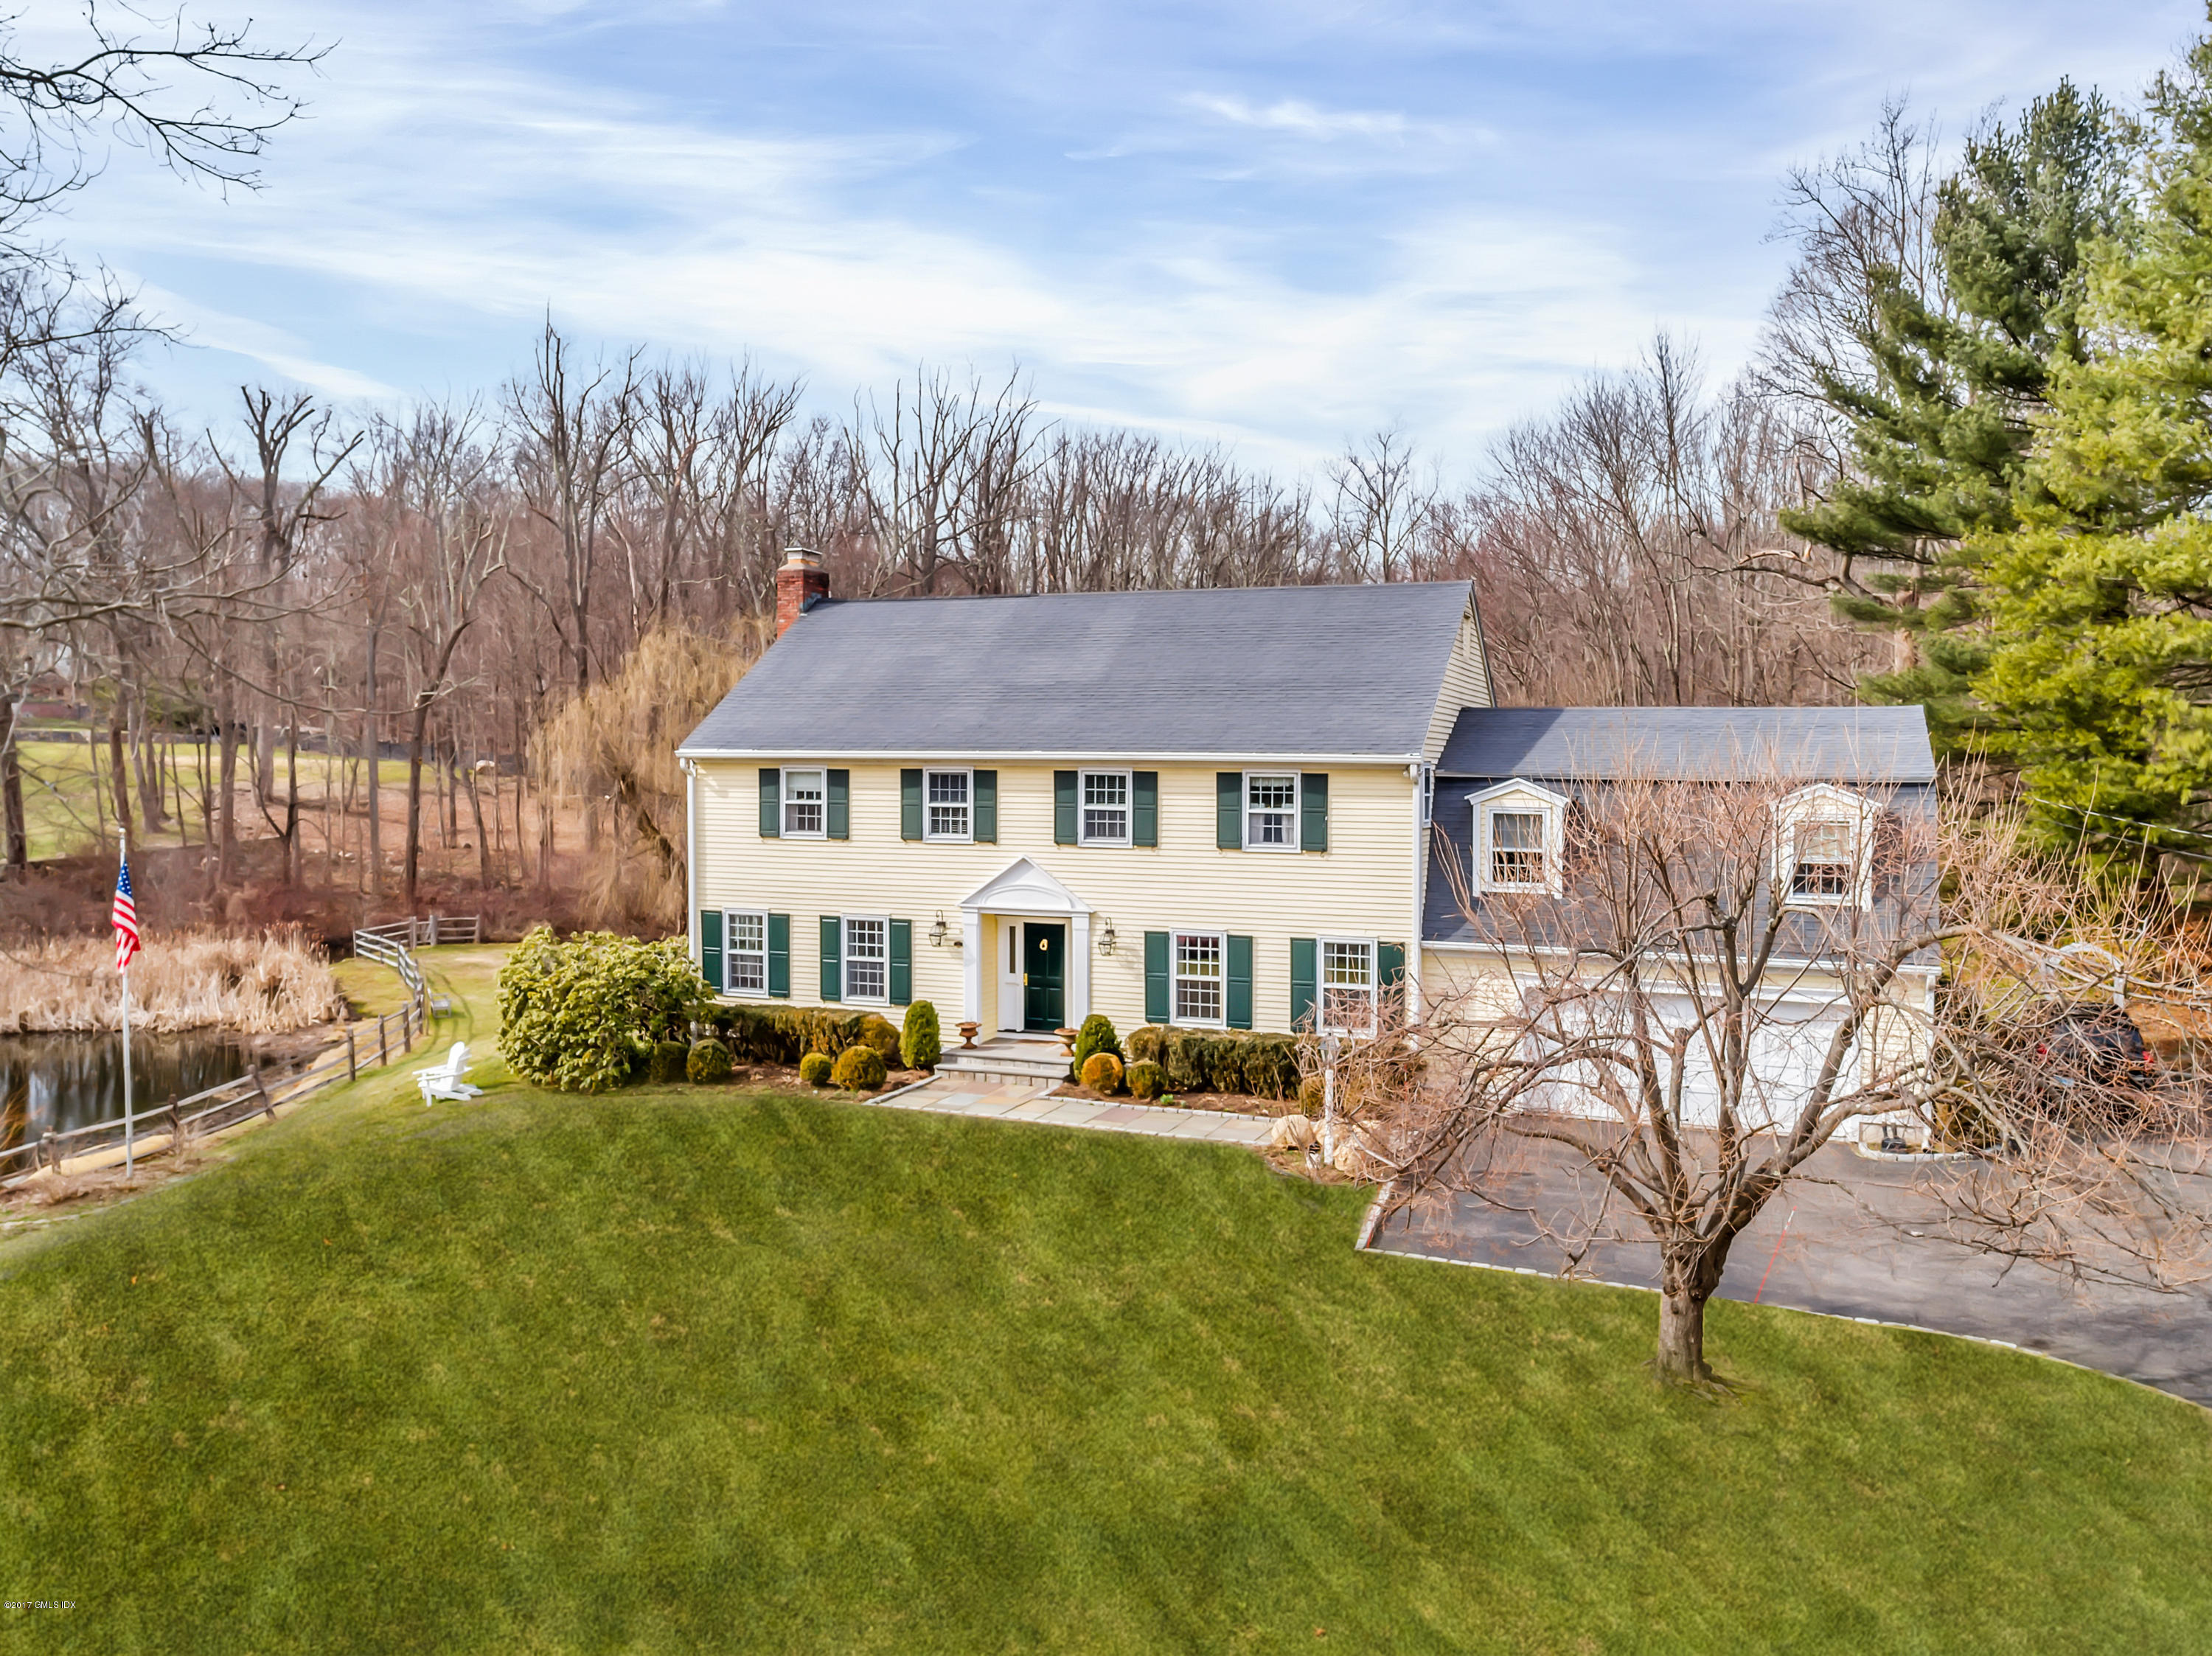 11 Red Coat Lane,Greenwich,Connecticut 06830,6 Bedrooms Bedrooms,4 BathroomsBathrooms,Single family,Red Coat,108075